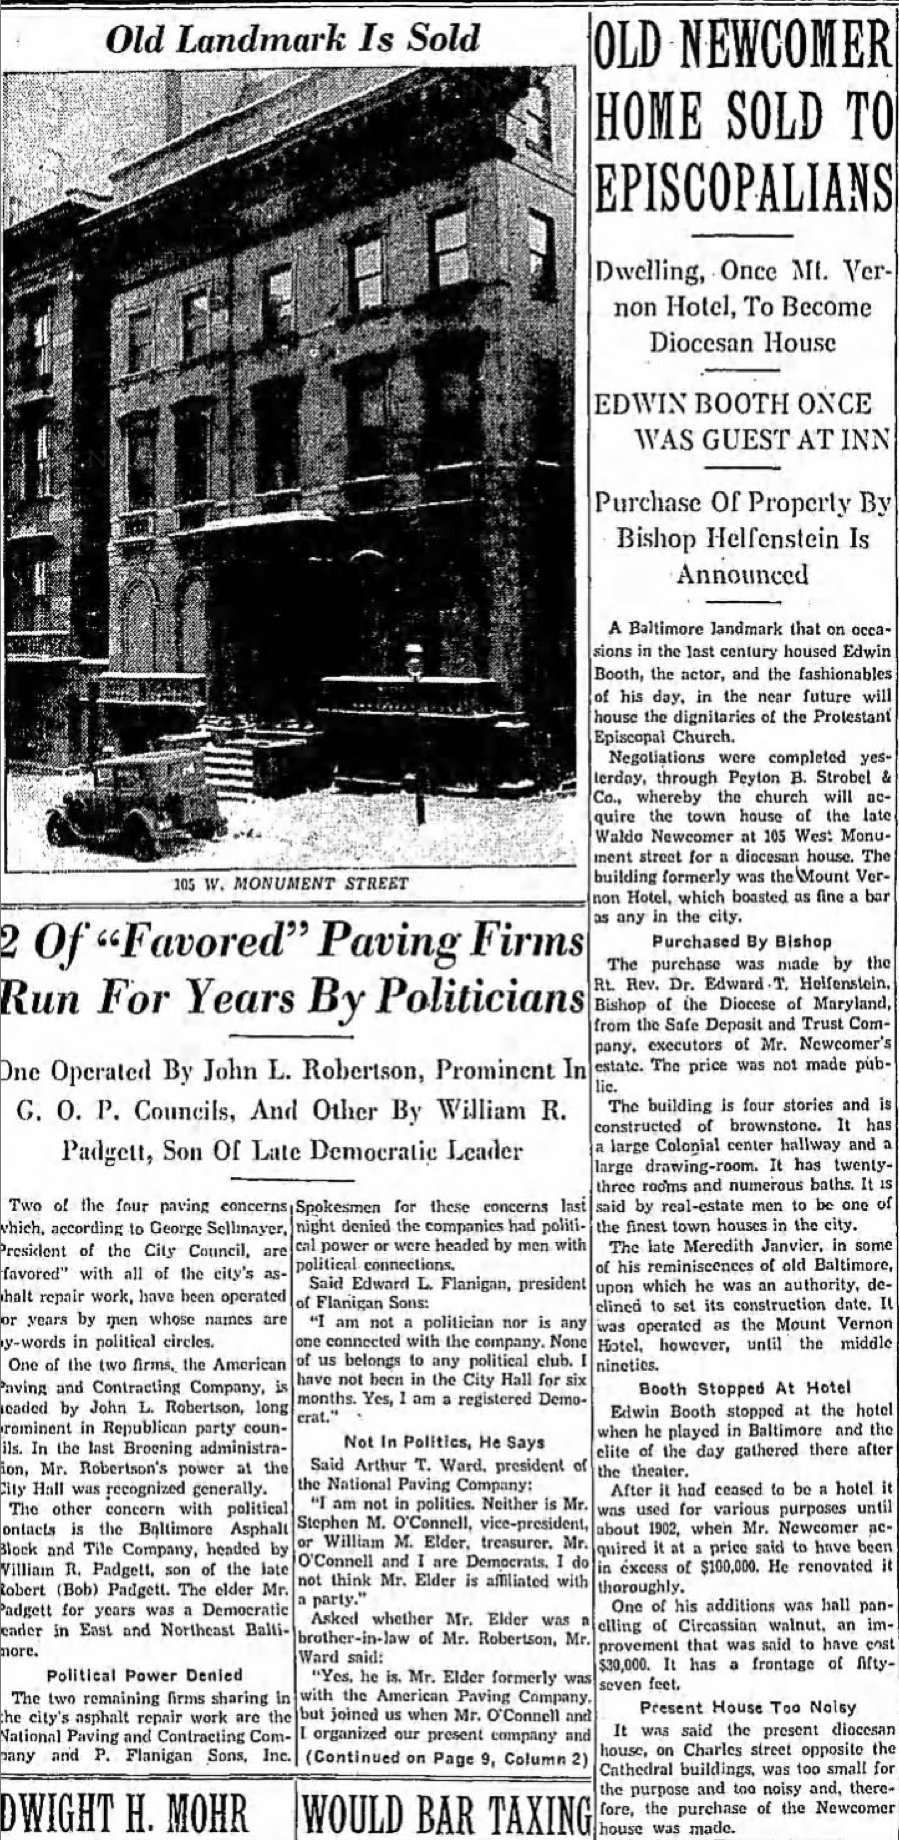 A story about the sale of 105 W. Monument in The Baltimore Sun, morning edition on February 12th, 1936.